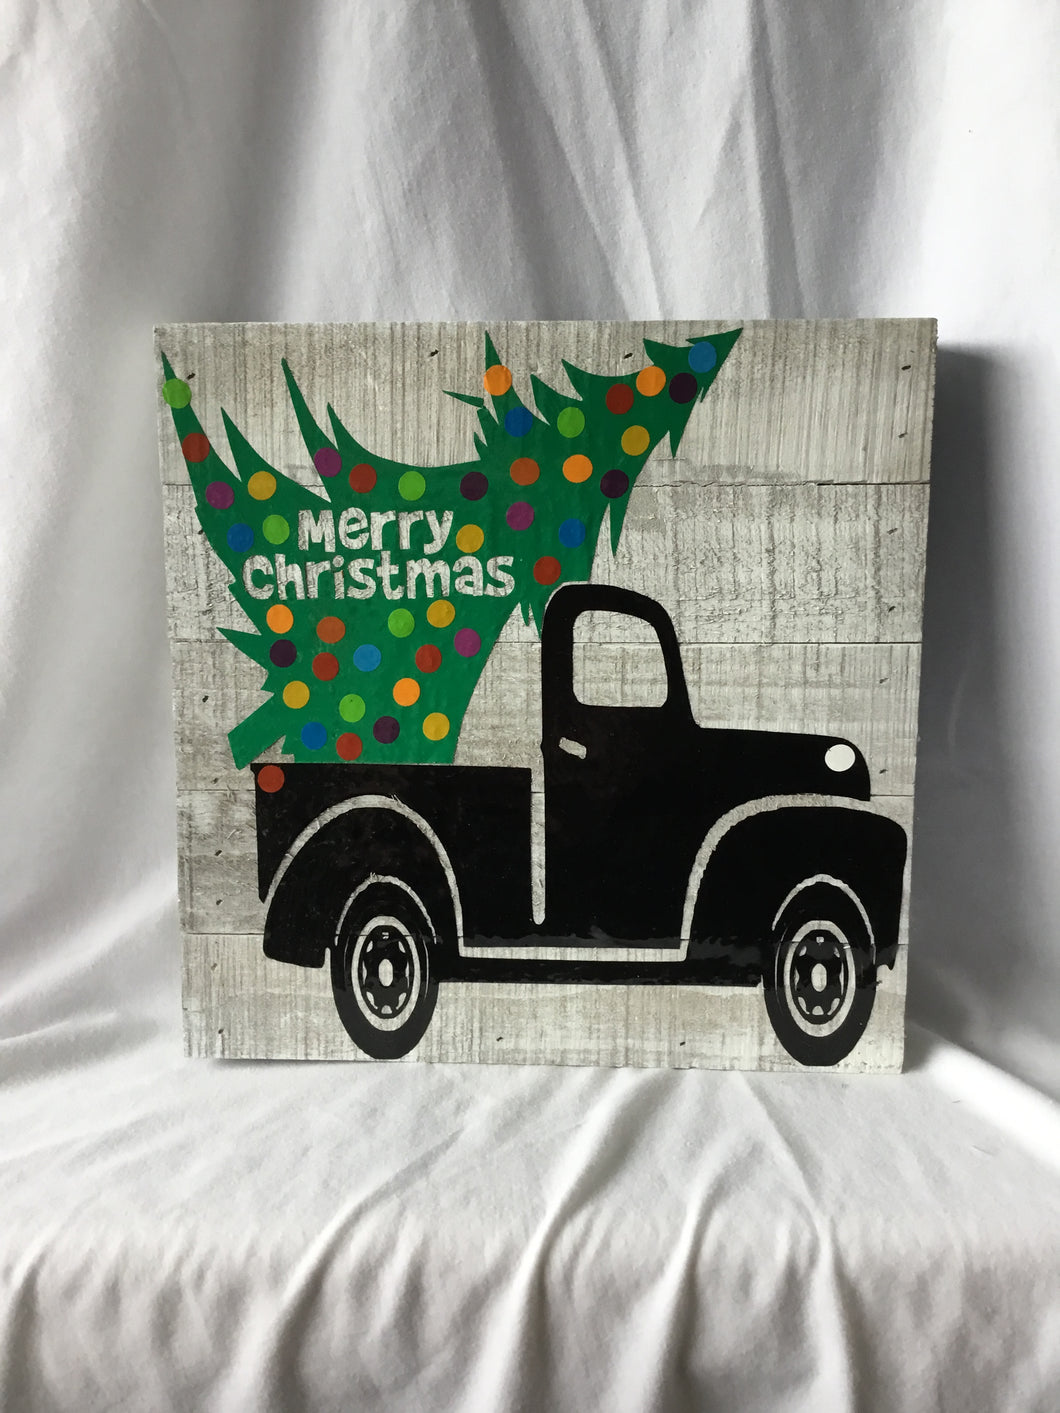 Merry Christmas 10x10 Wood Plaque